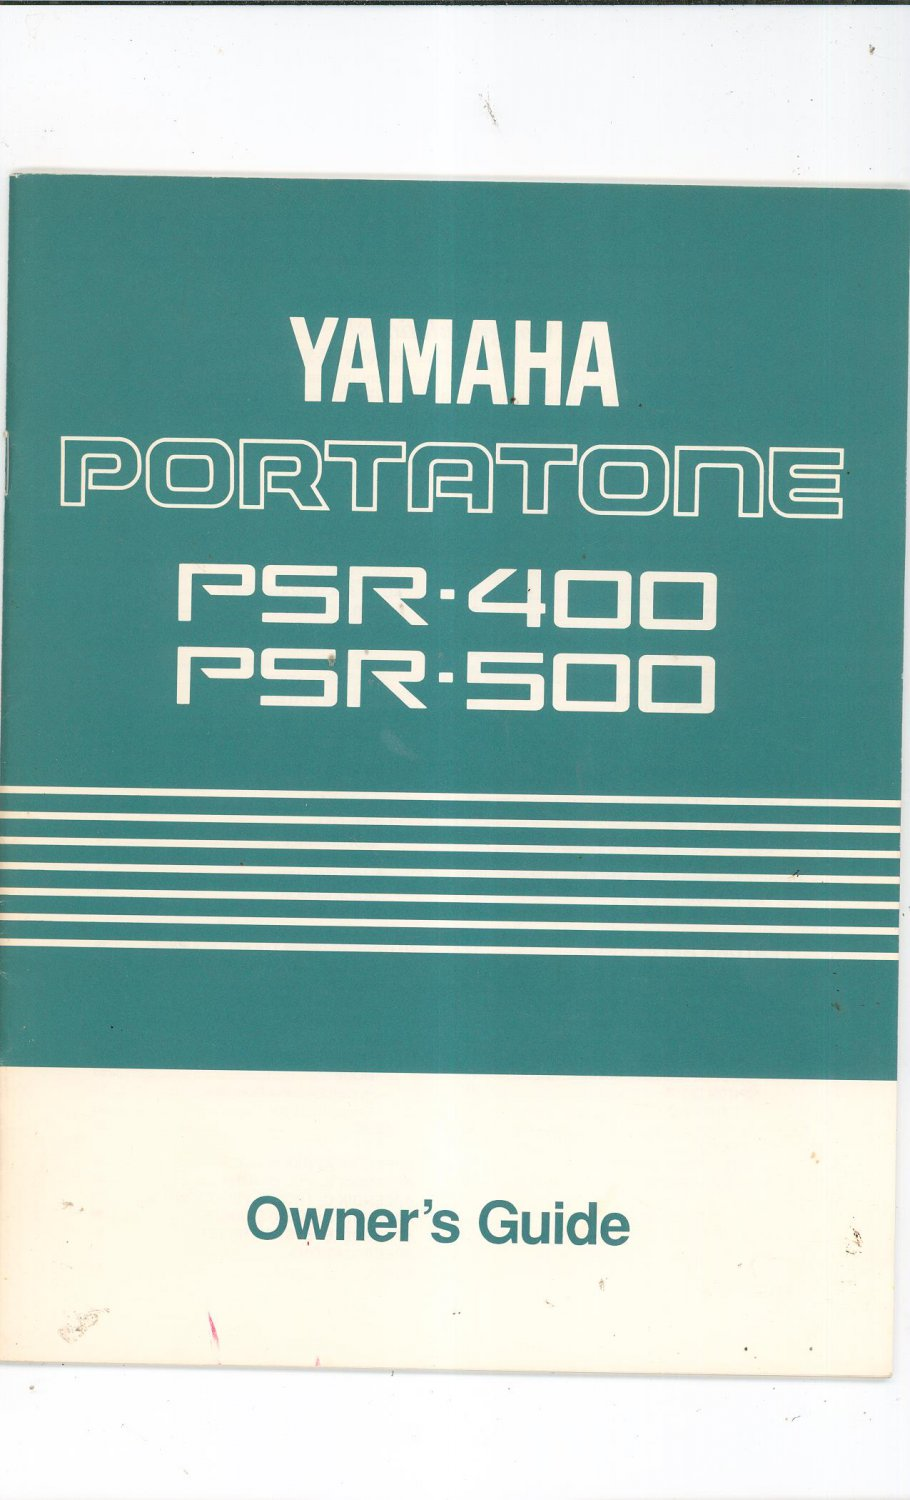 yamaha portatone psr 400 psr 500 owners guide manual not pdf. Black Bedroom Furniture Sets. Home Design Ideas